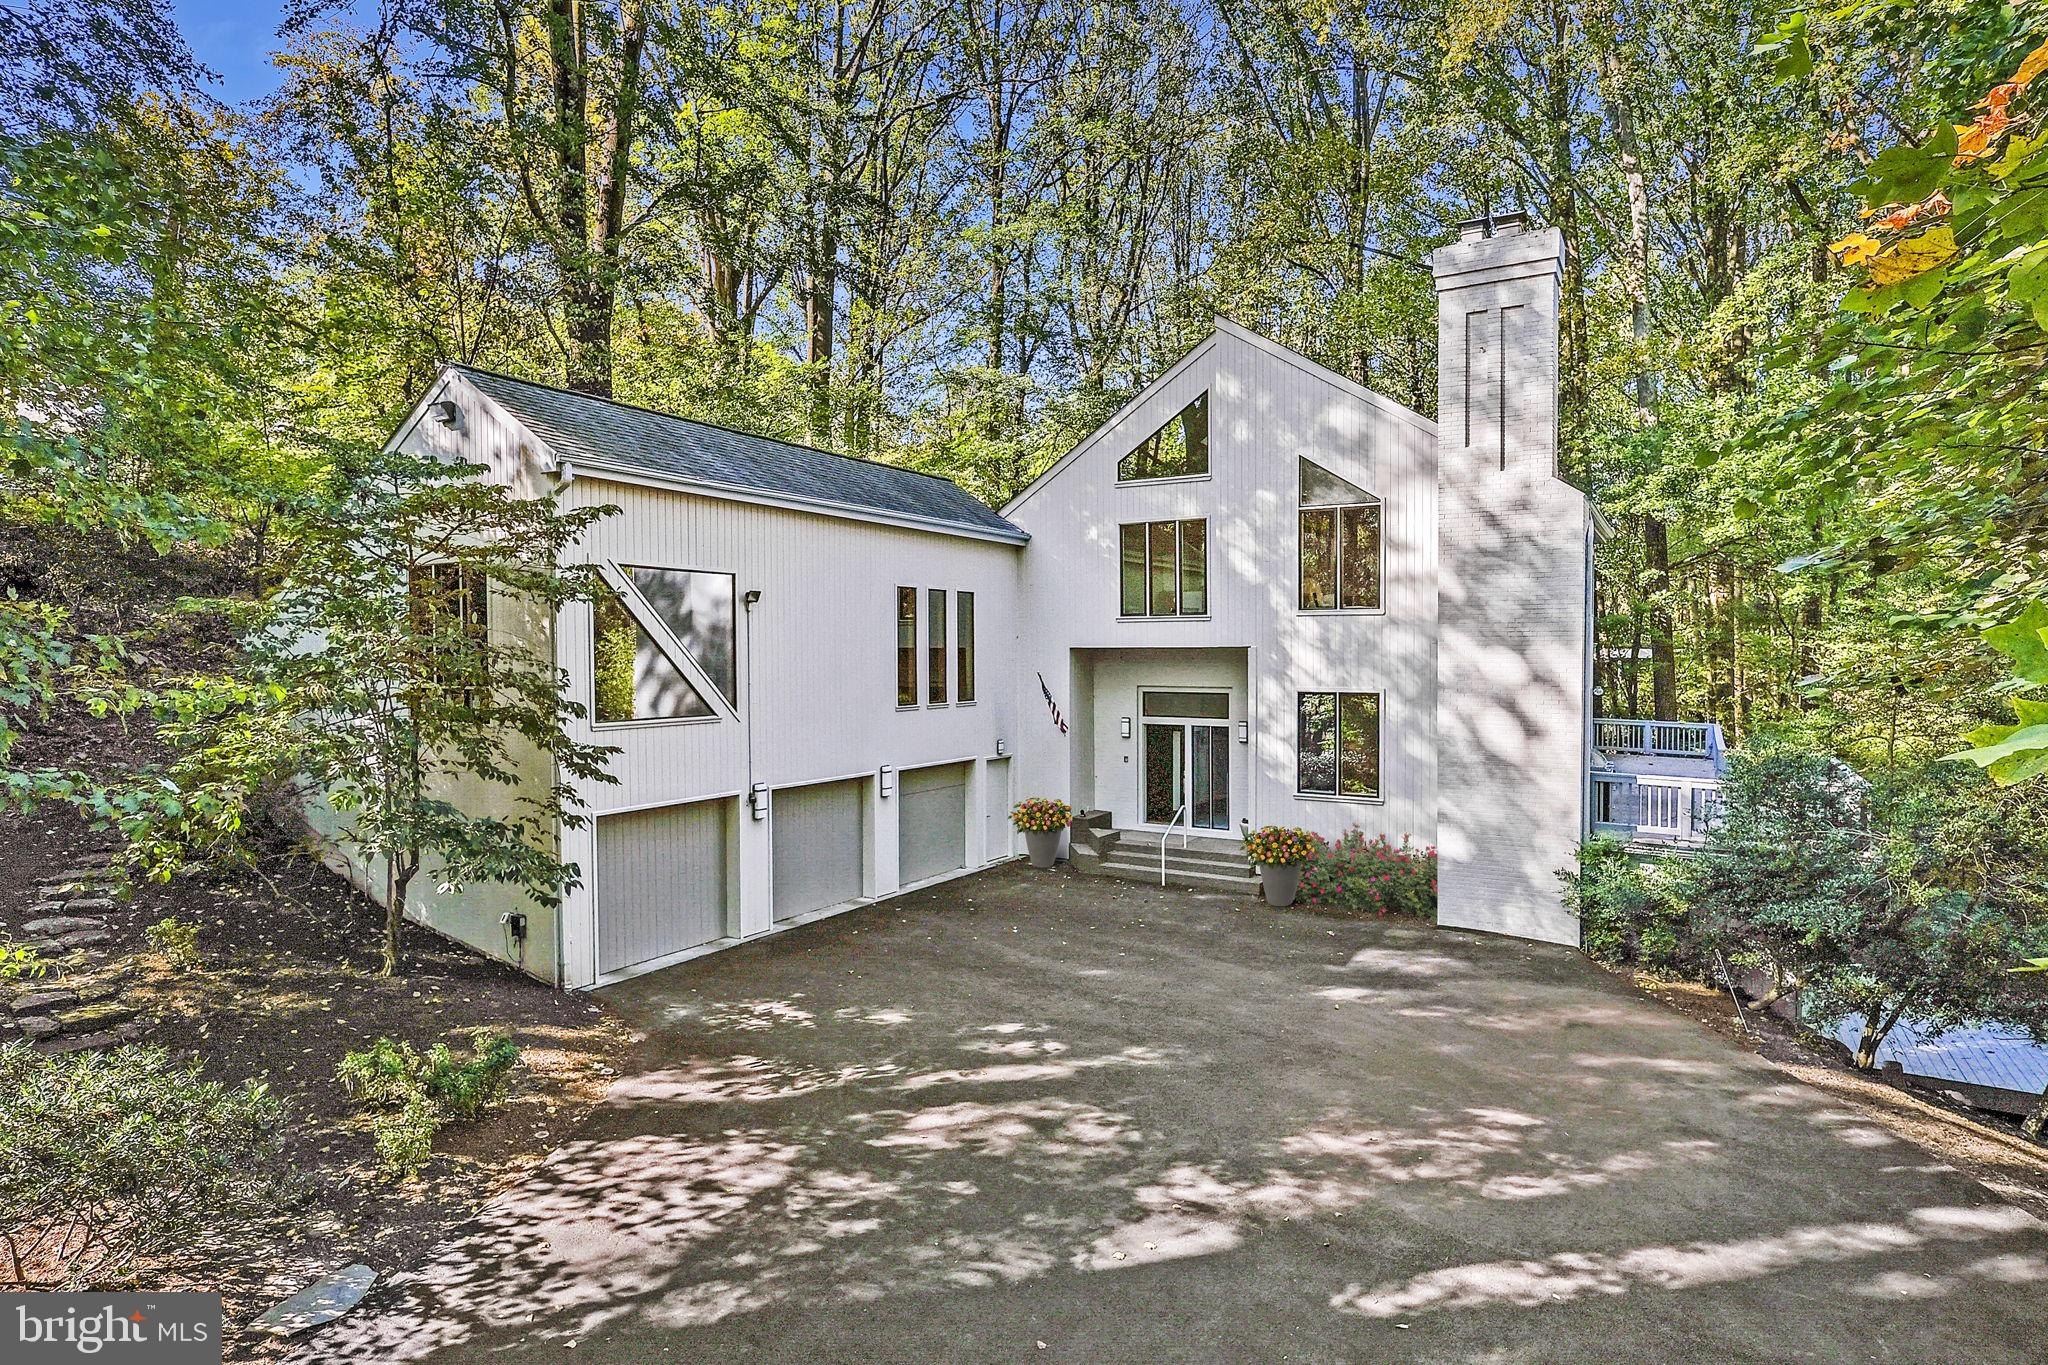 11110 MARCLIFF ROAD, NORTH BETHESDA, MD 20852